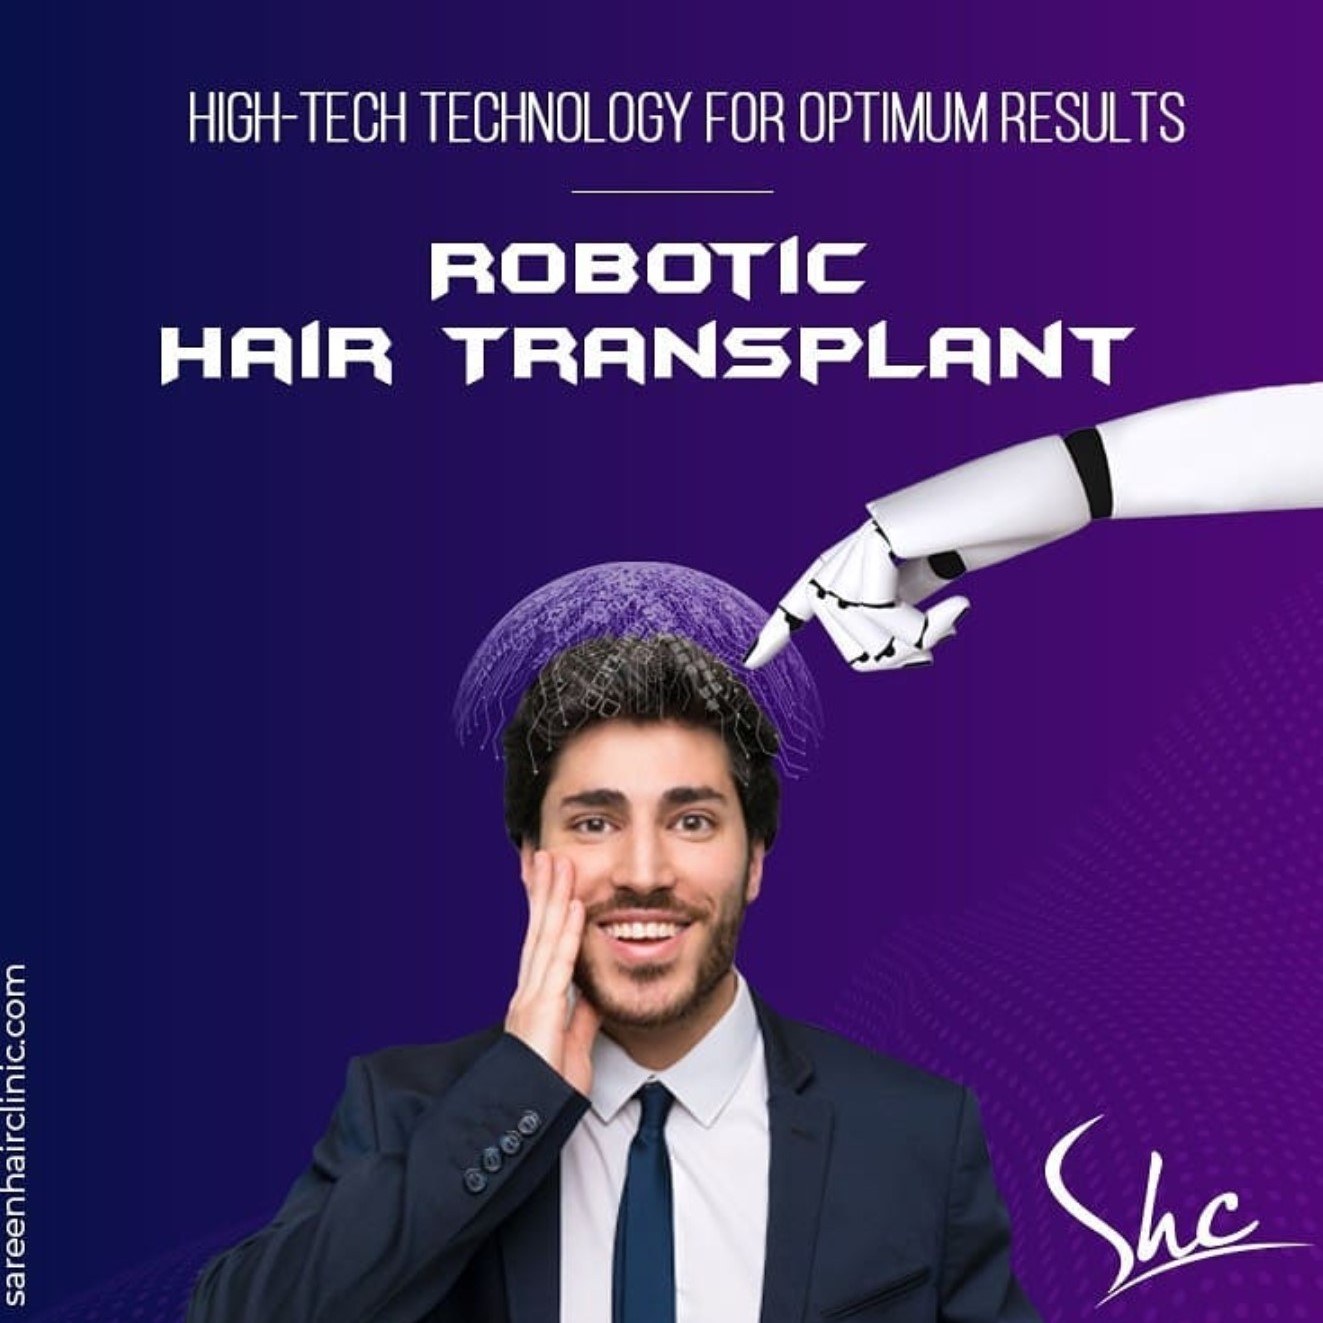 Robotic hair transplant